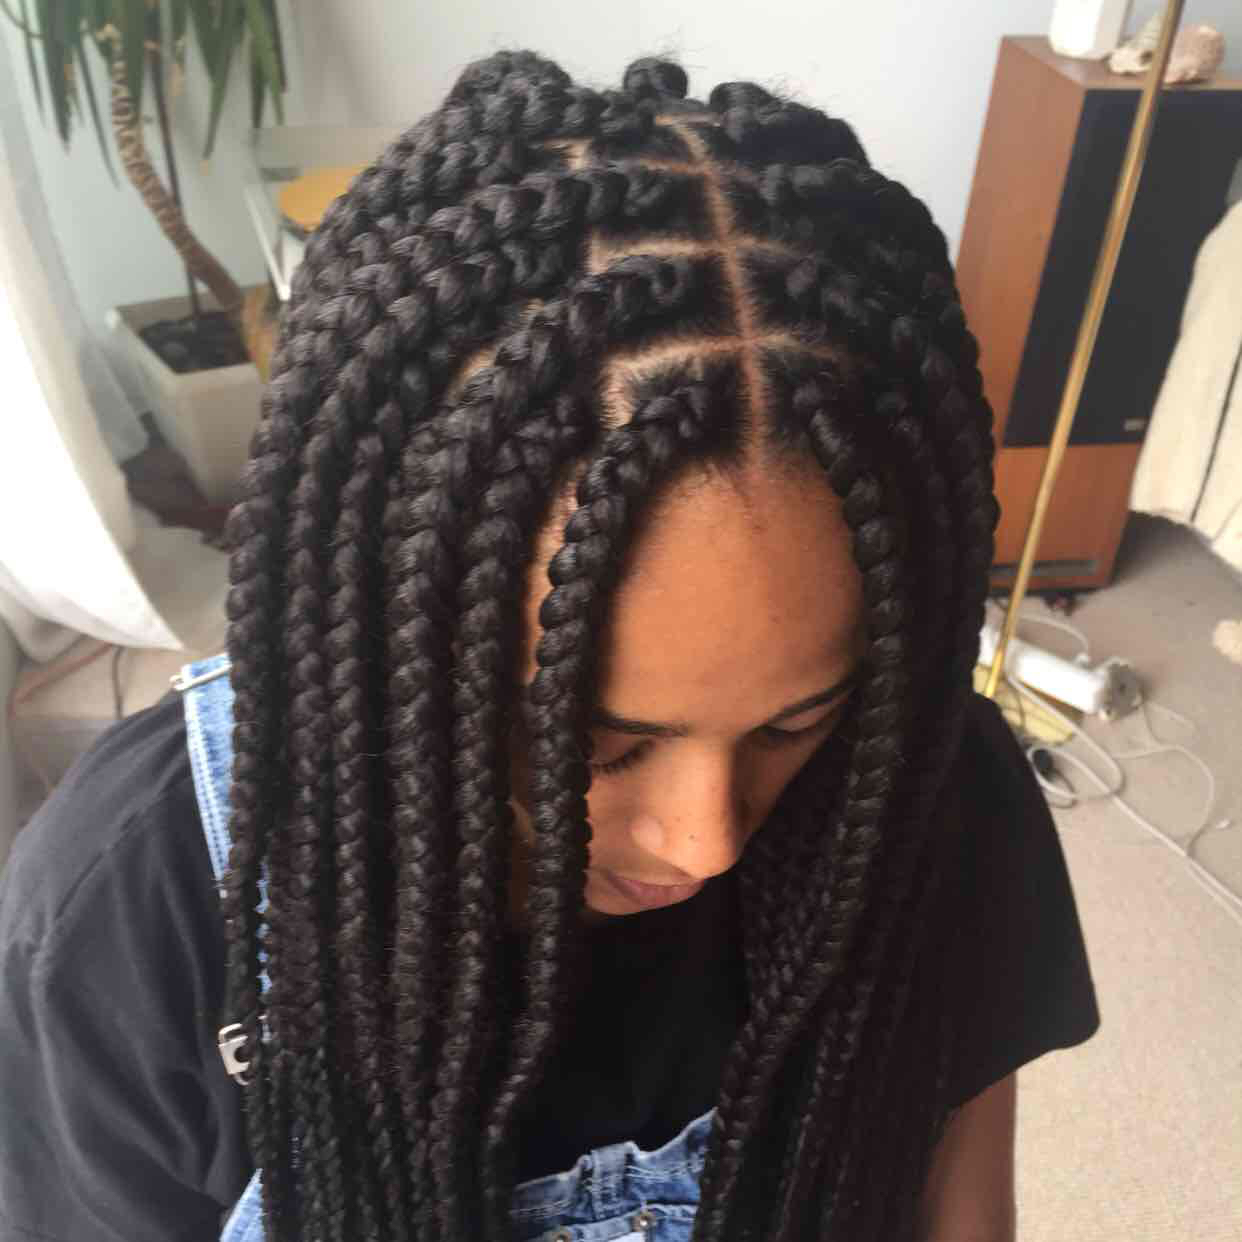 salon de coiffure afro tresse tresses box braids crochet braids vanilles tissages paris 75 77 78 91 92 93 94 95 RPETRPEH